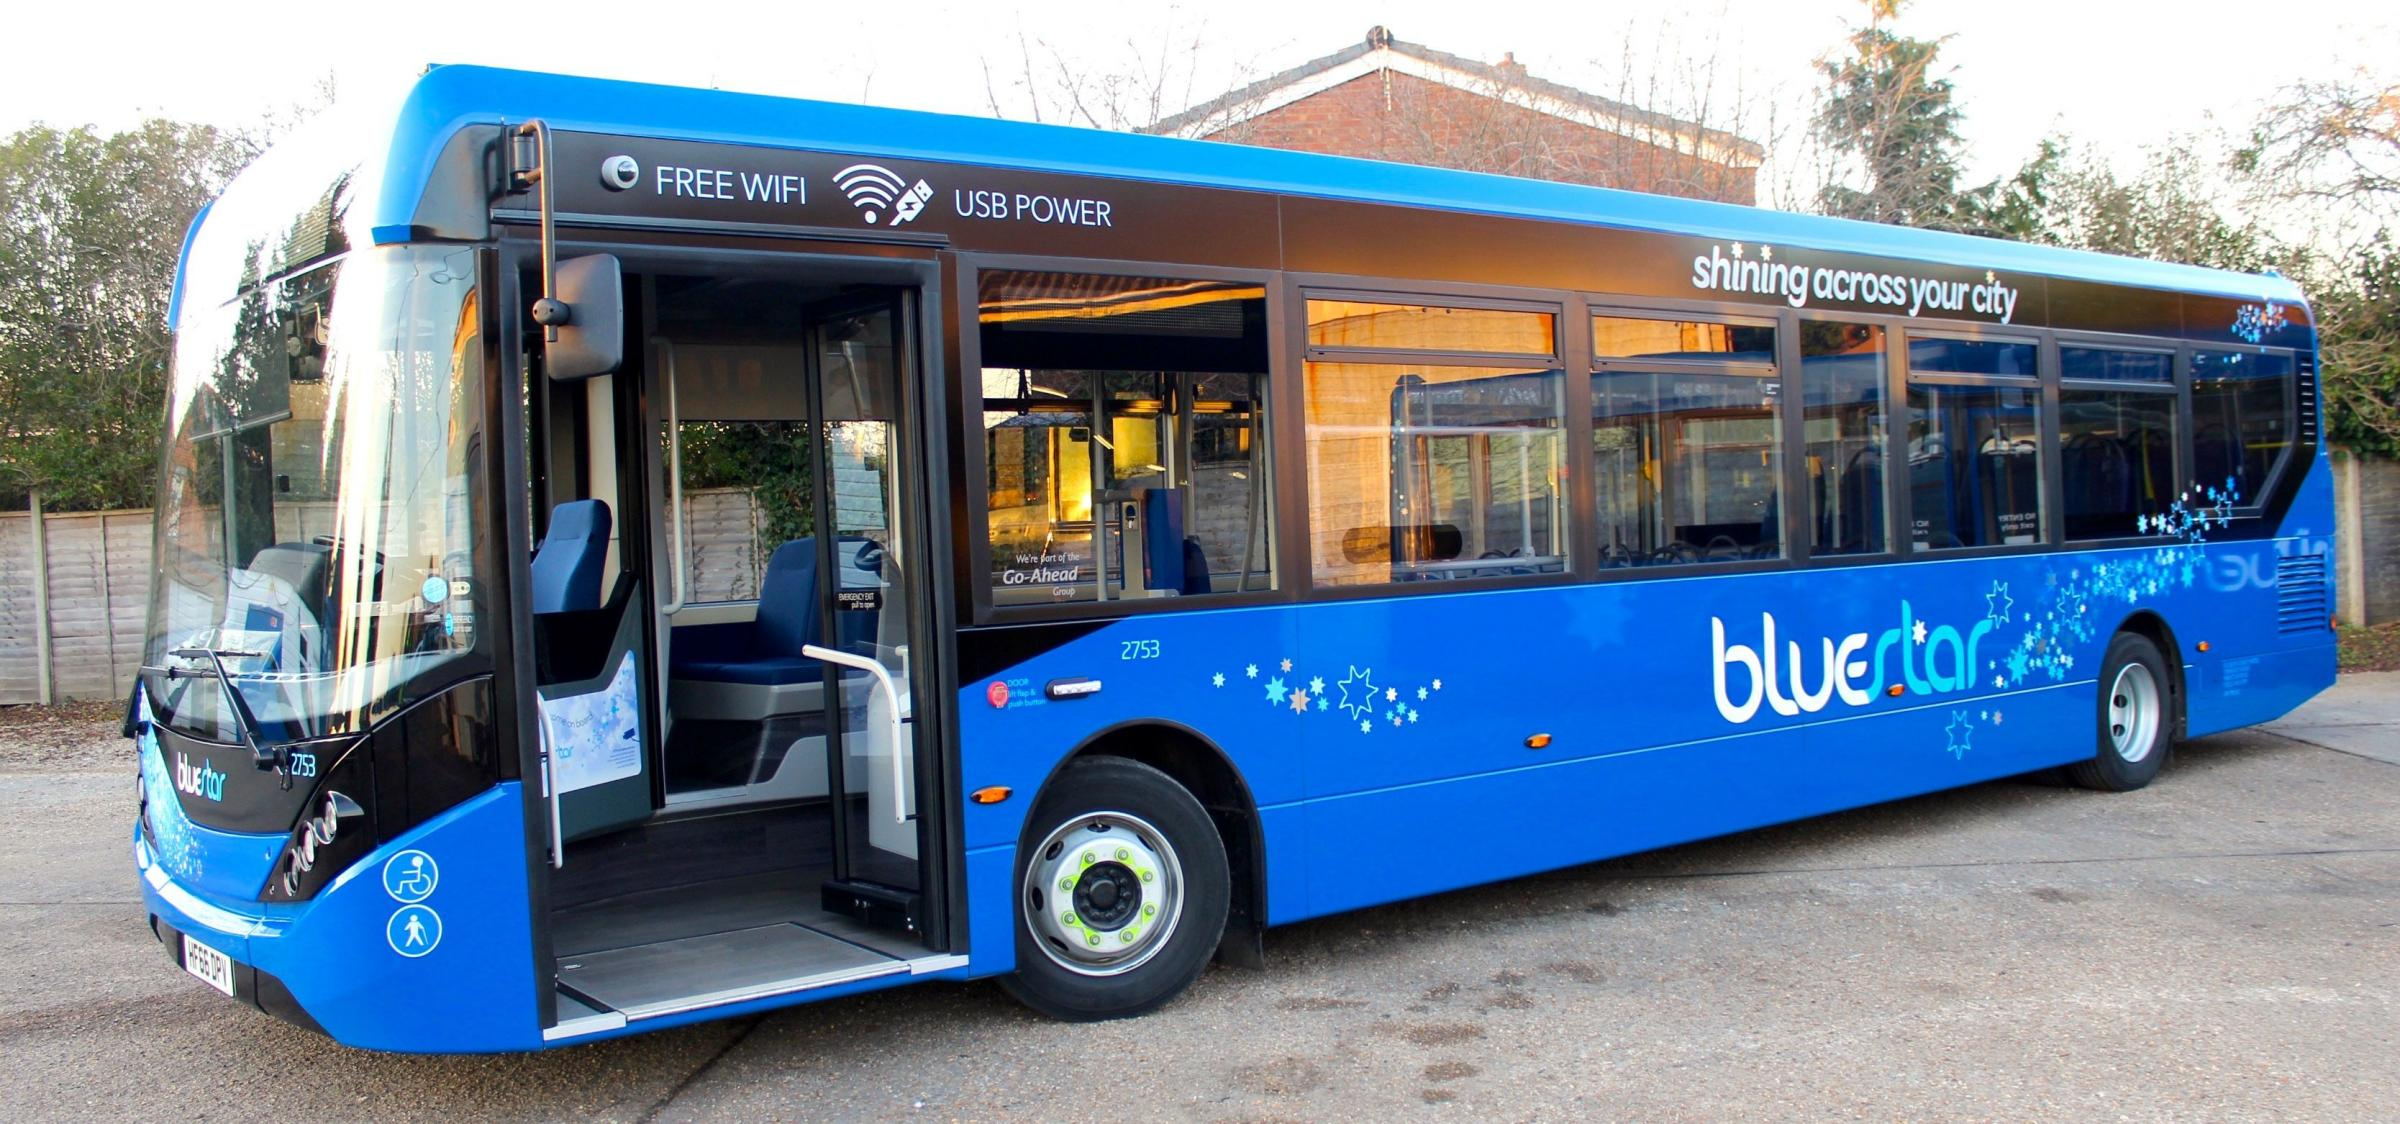 Bluestar will extend its Bluestar 7 service to pick up the route left behind by the axed First 12 service